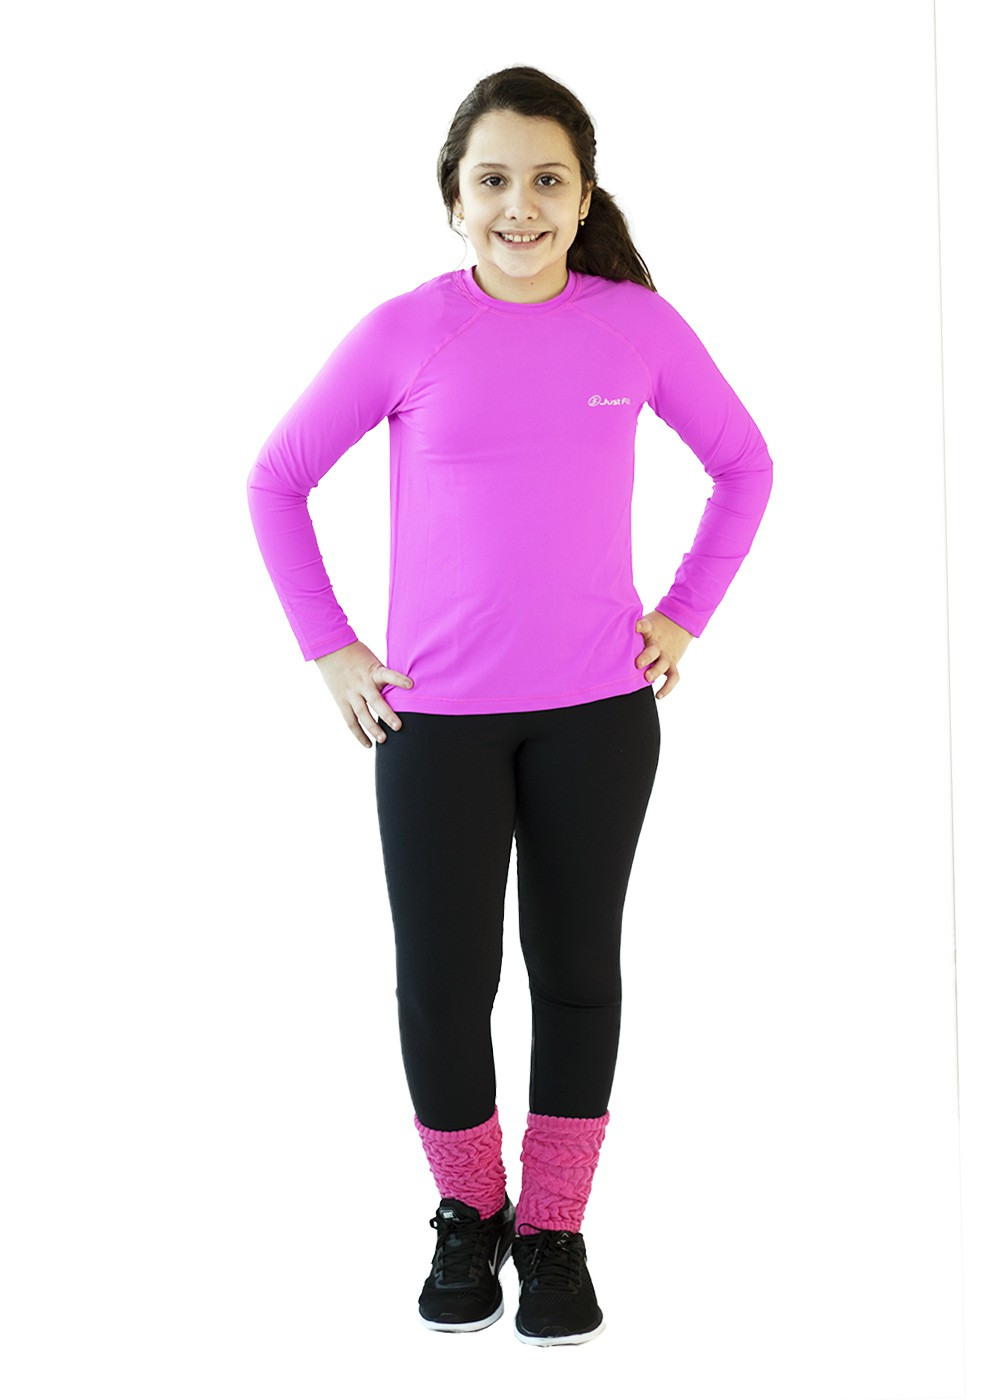 POLAINA INFANTIL JUST FIT - PINK